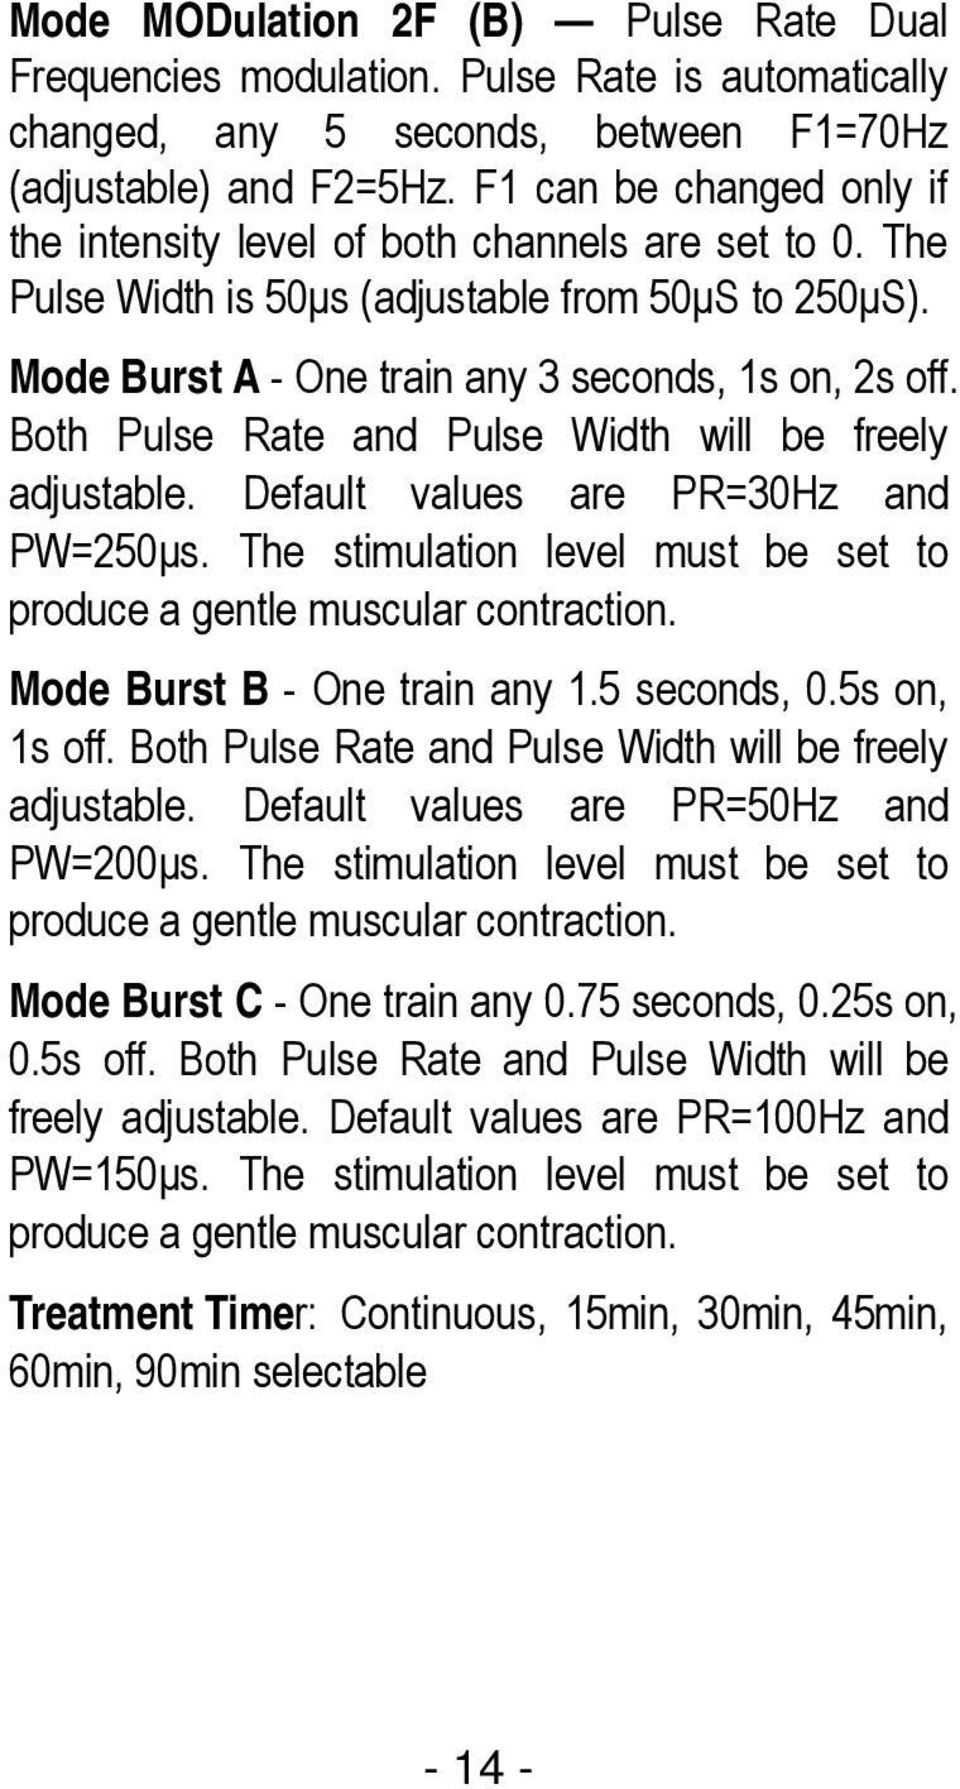 Both Pulse Rate and Pulse Width will be freely adjustable. Default values are PR=30Hz and PW=250μs. The stimulation level must be set to produce a gentle muscular contraction.